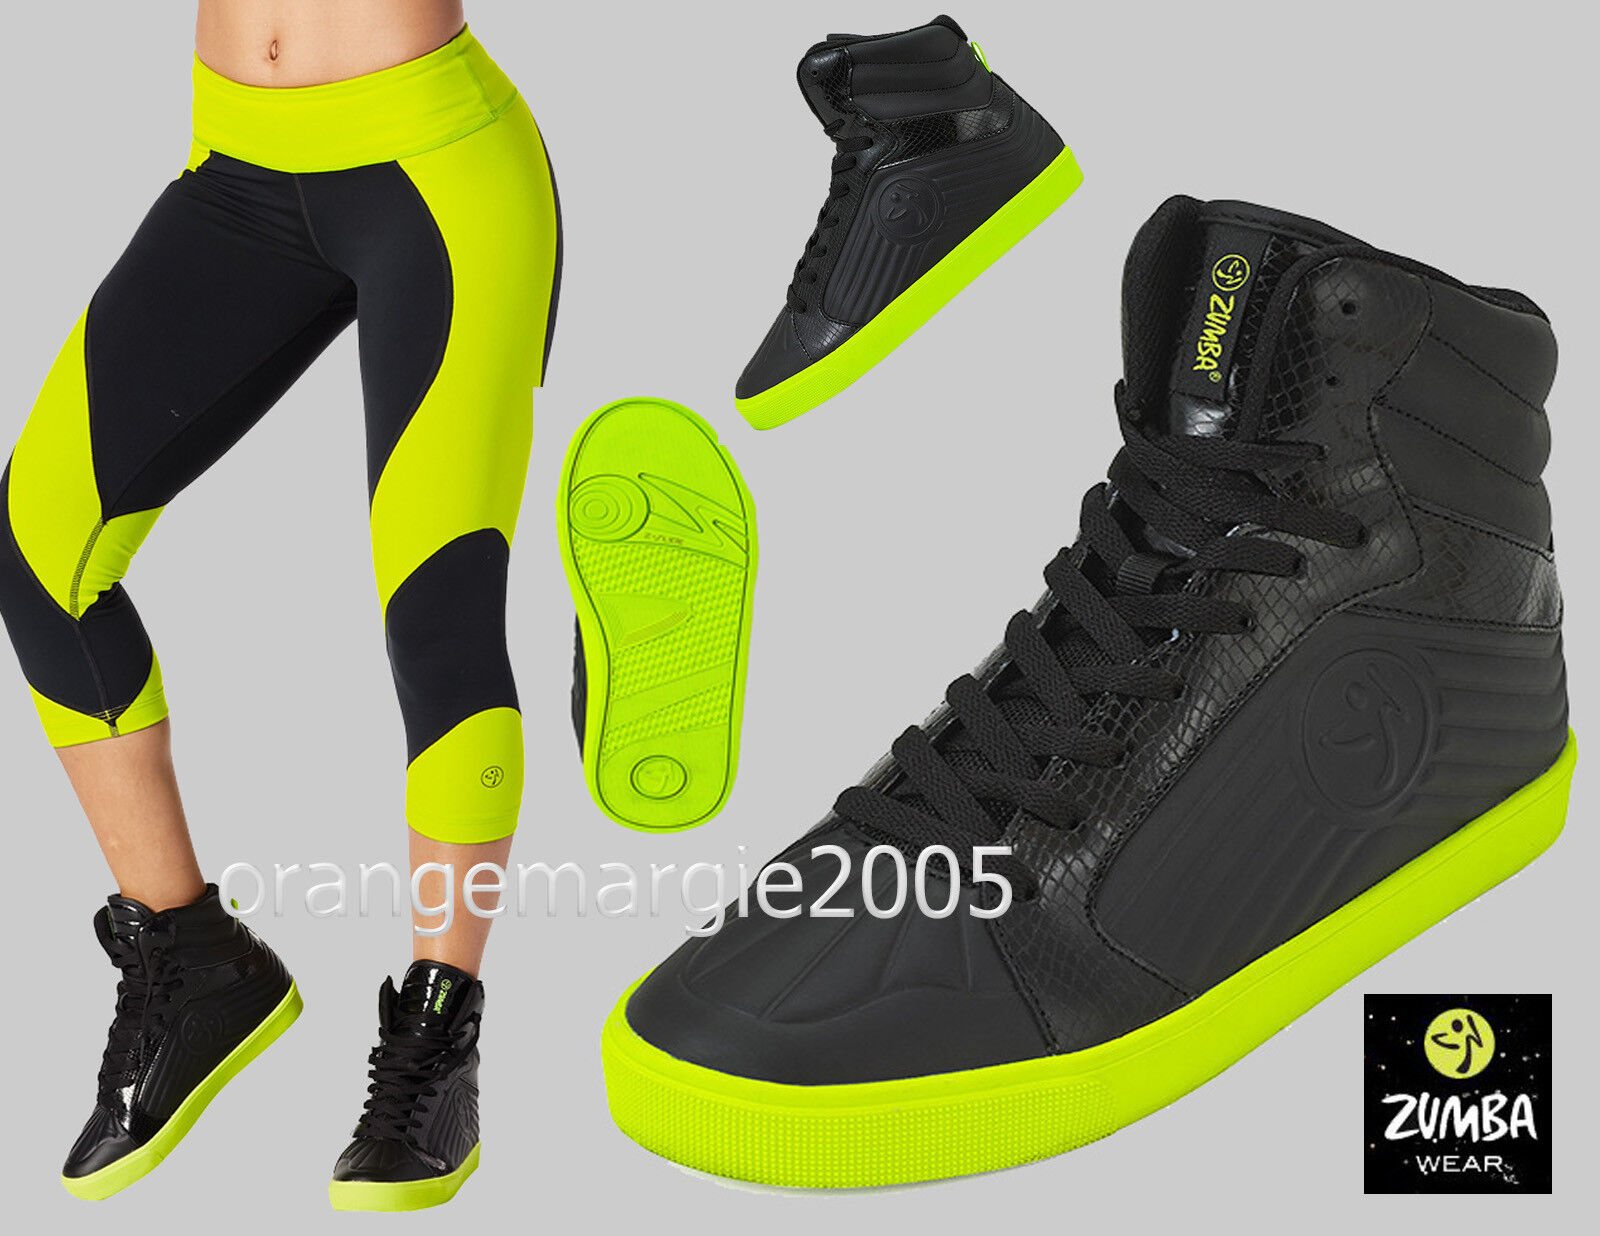 High Hop Groove Line Top Dance Street Chaussures Zumba Trainers Hip w1EPqv0